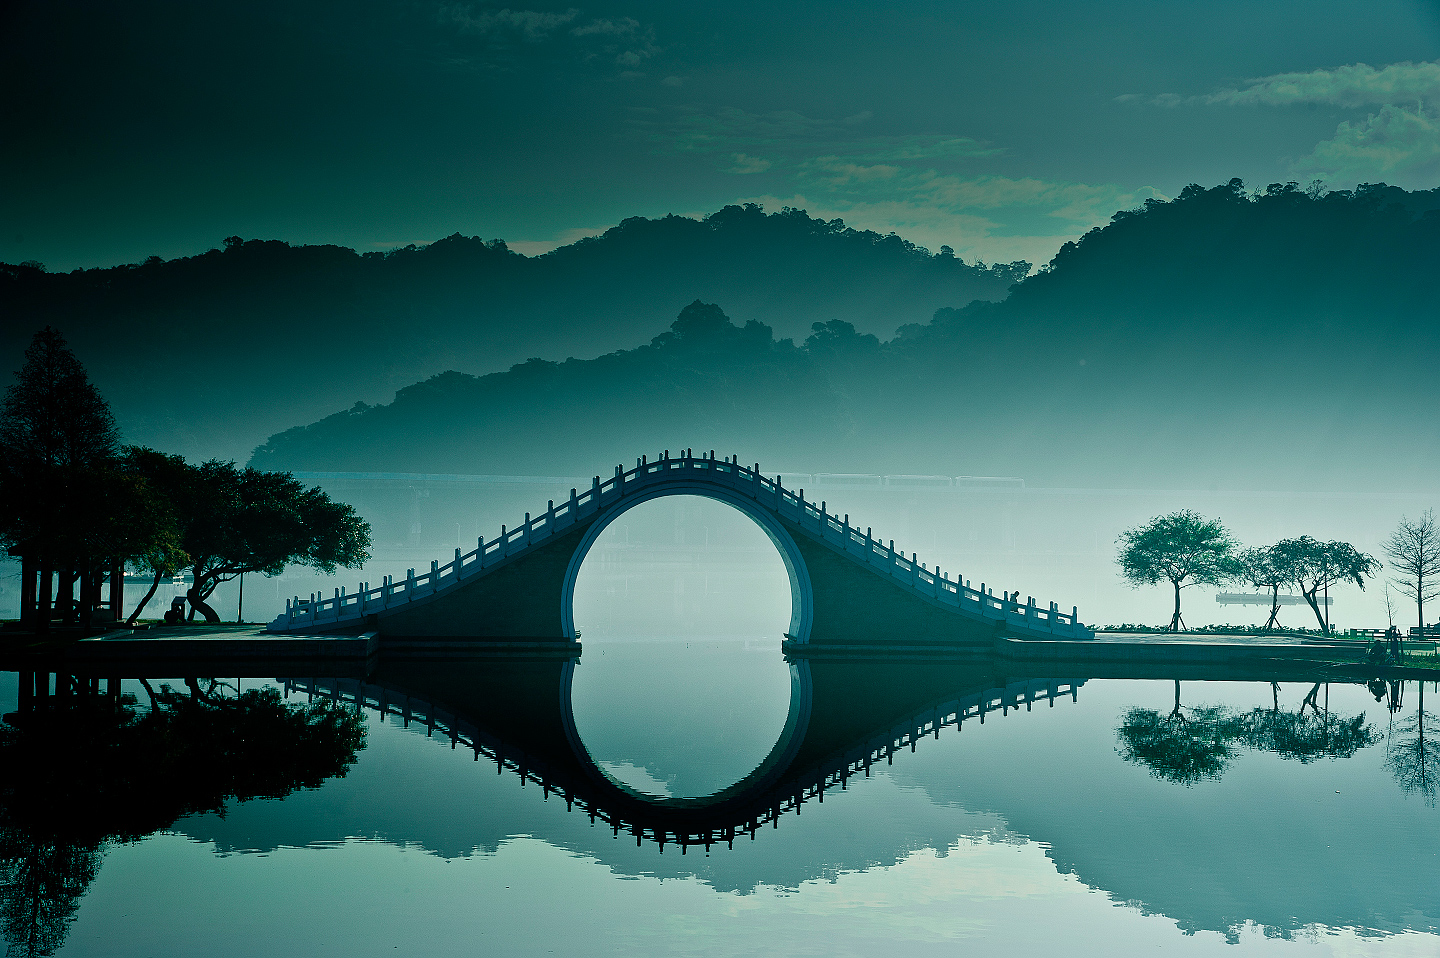 10. The Moon Bridge, Taipei, Taiwan 1